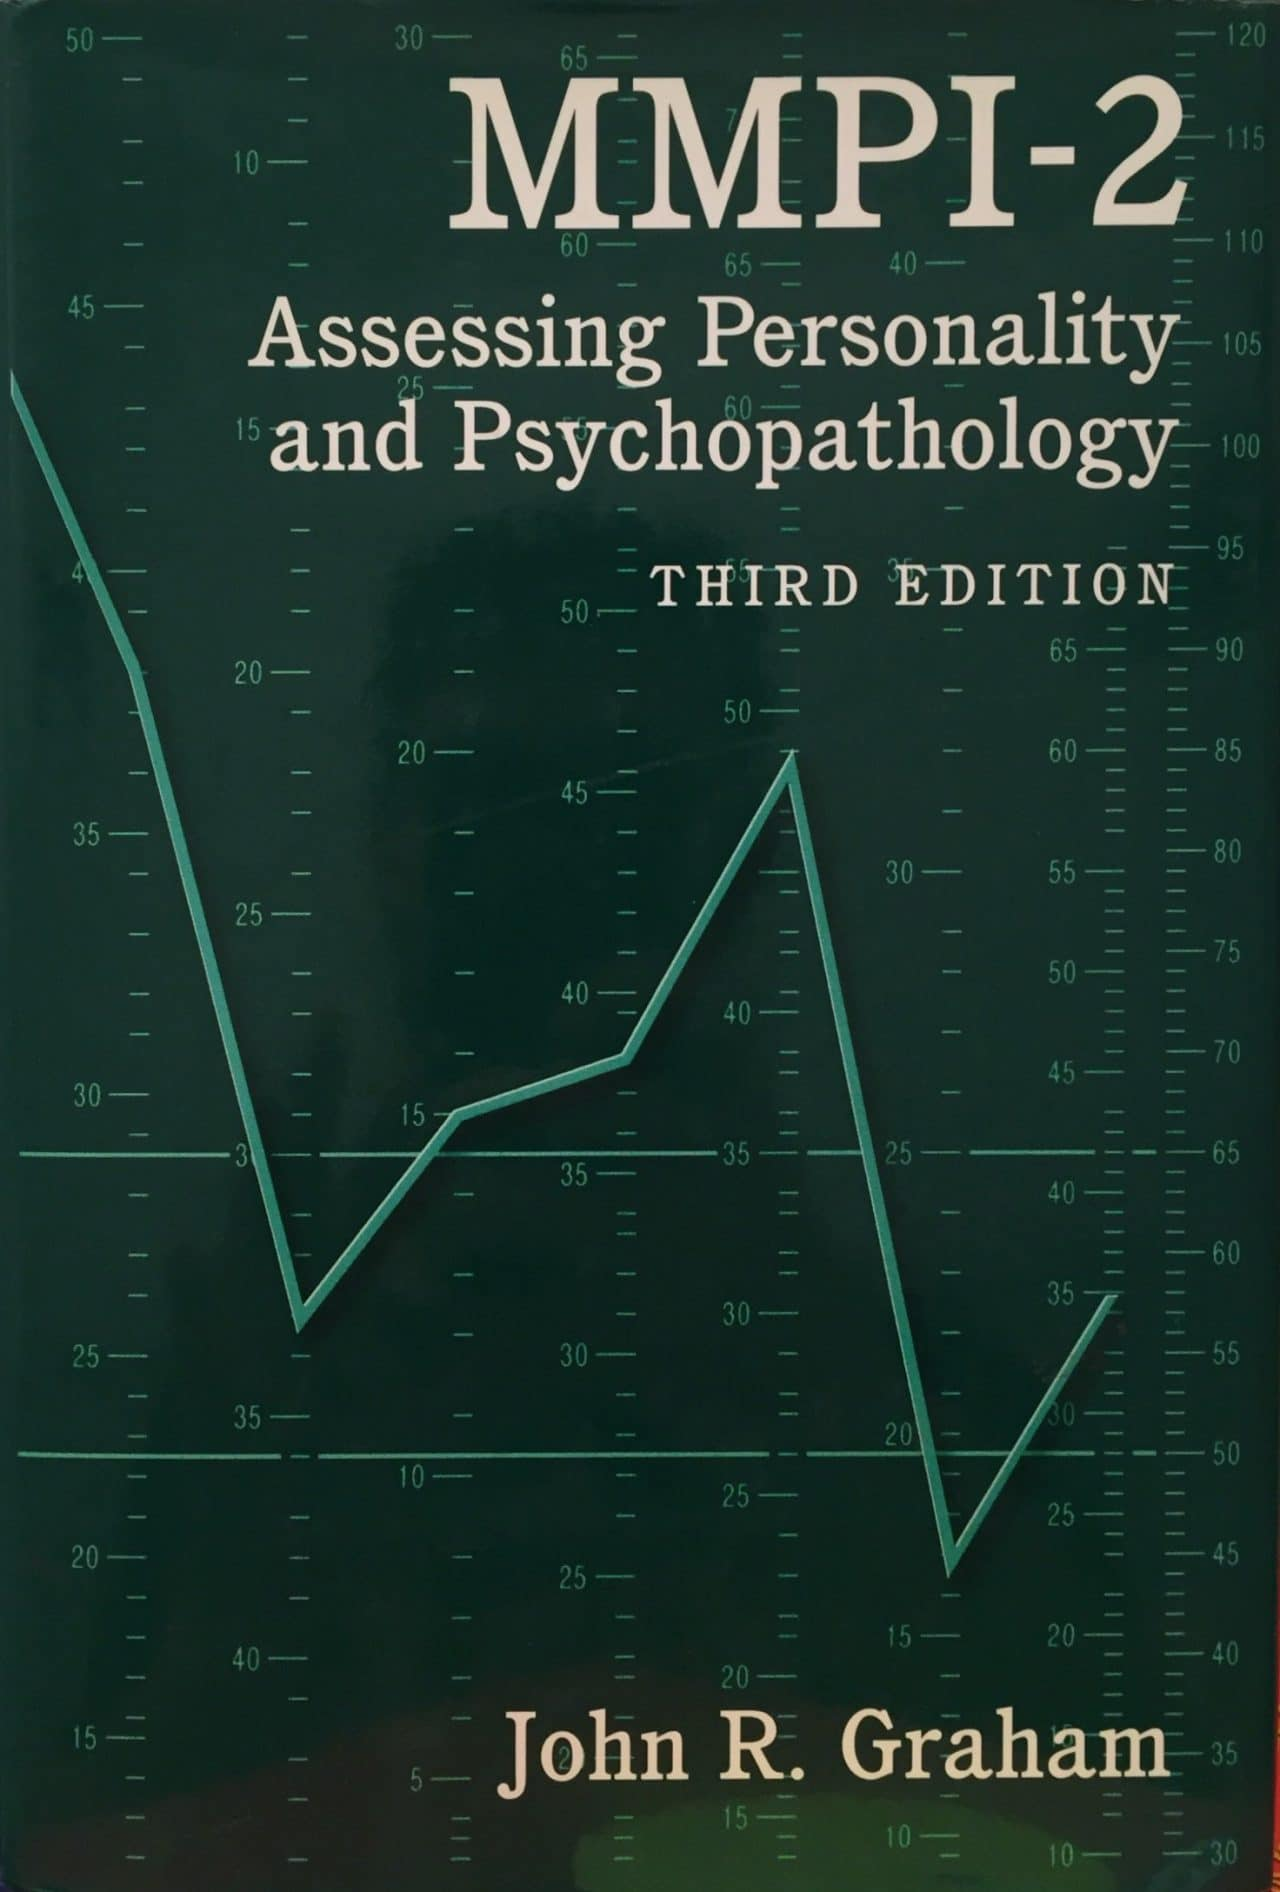 MMPI-2 Assessing Personality And Psychopathology Third Edition